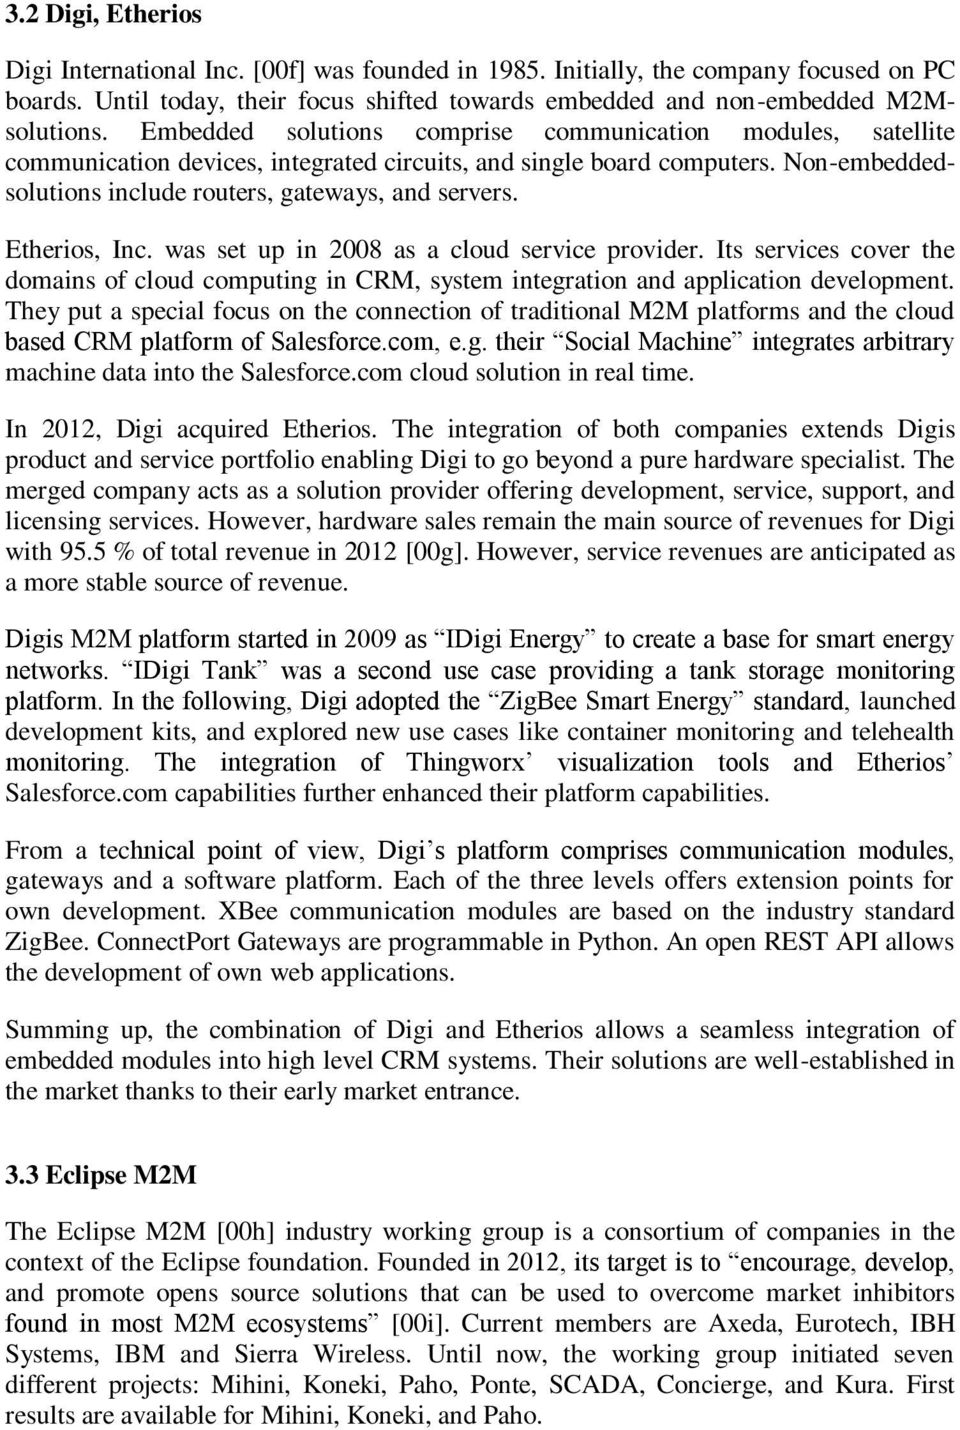 Etherios, Inc. was set up in 2008 as a cloud service provider. Its services cover the domains of cloud computing in CRM, system integration and application development.